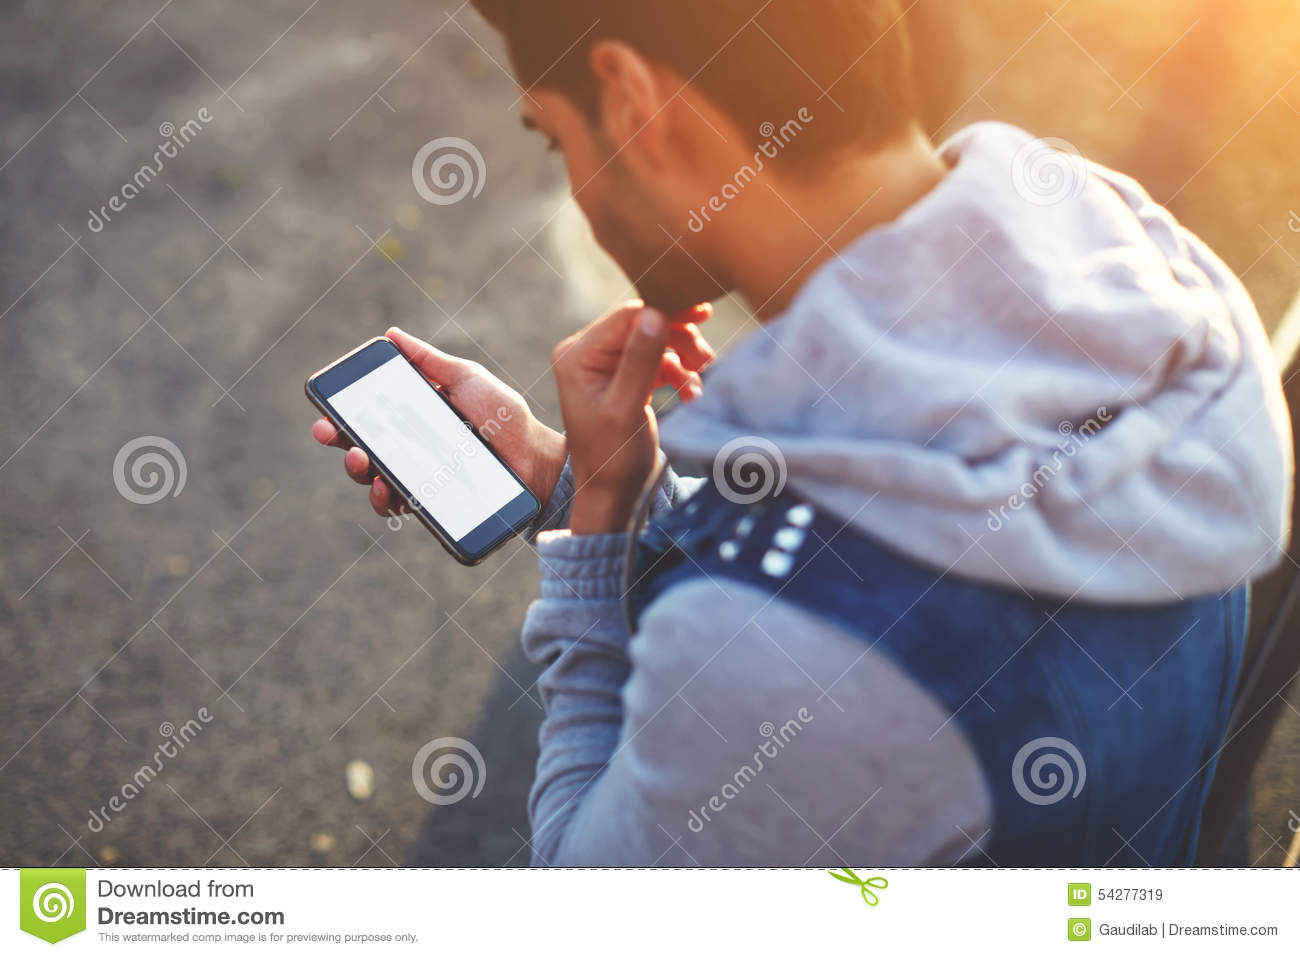 dating website for skinny men younger 30 Older men, younger men: dating across the generations posted on january 16, 2013 by eleanore i like men and i like dating and i have an equal opportunity policy in place, in most cases in other words, i date guys of different ethnicities, religions, political persuasions, and ages in so many ways, a guy is a guy is a guy and some of the.